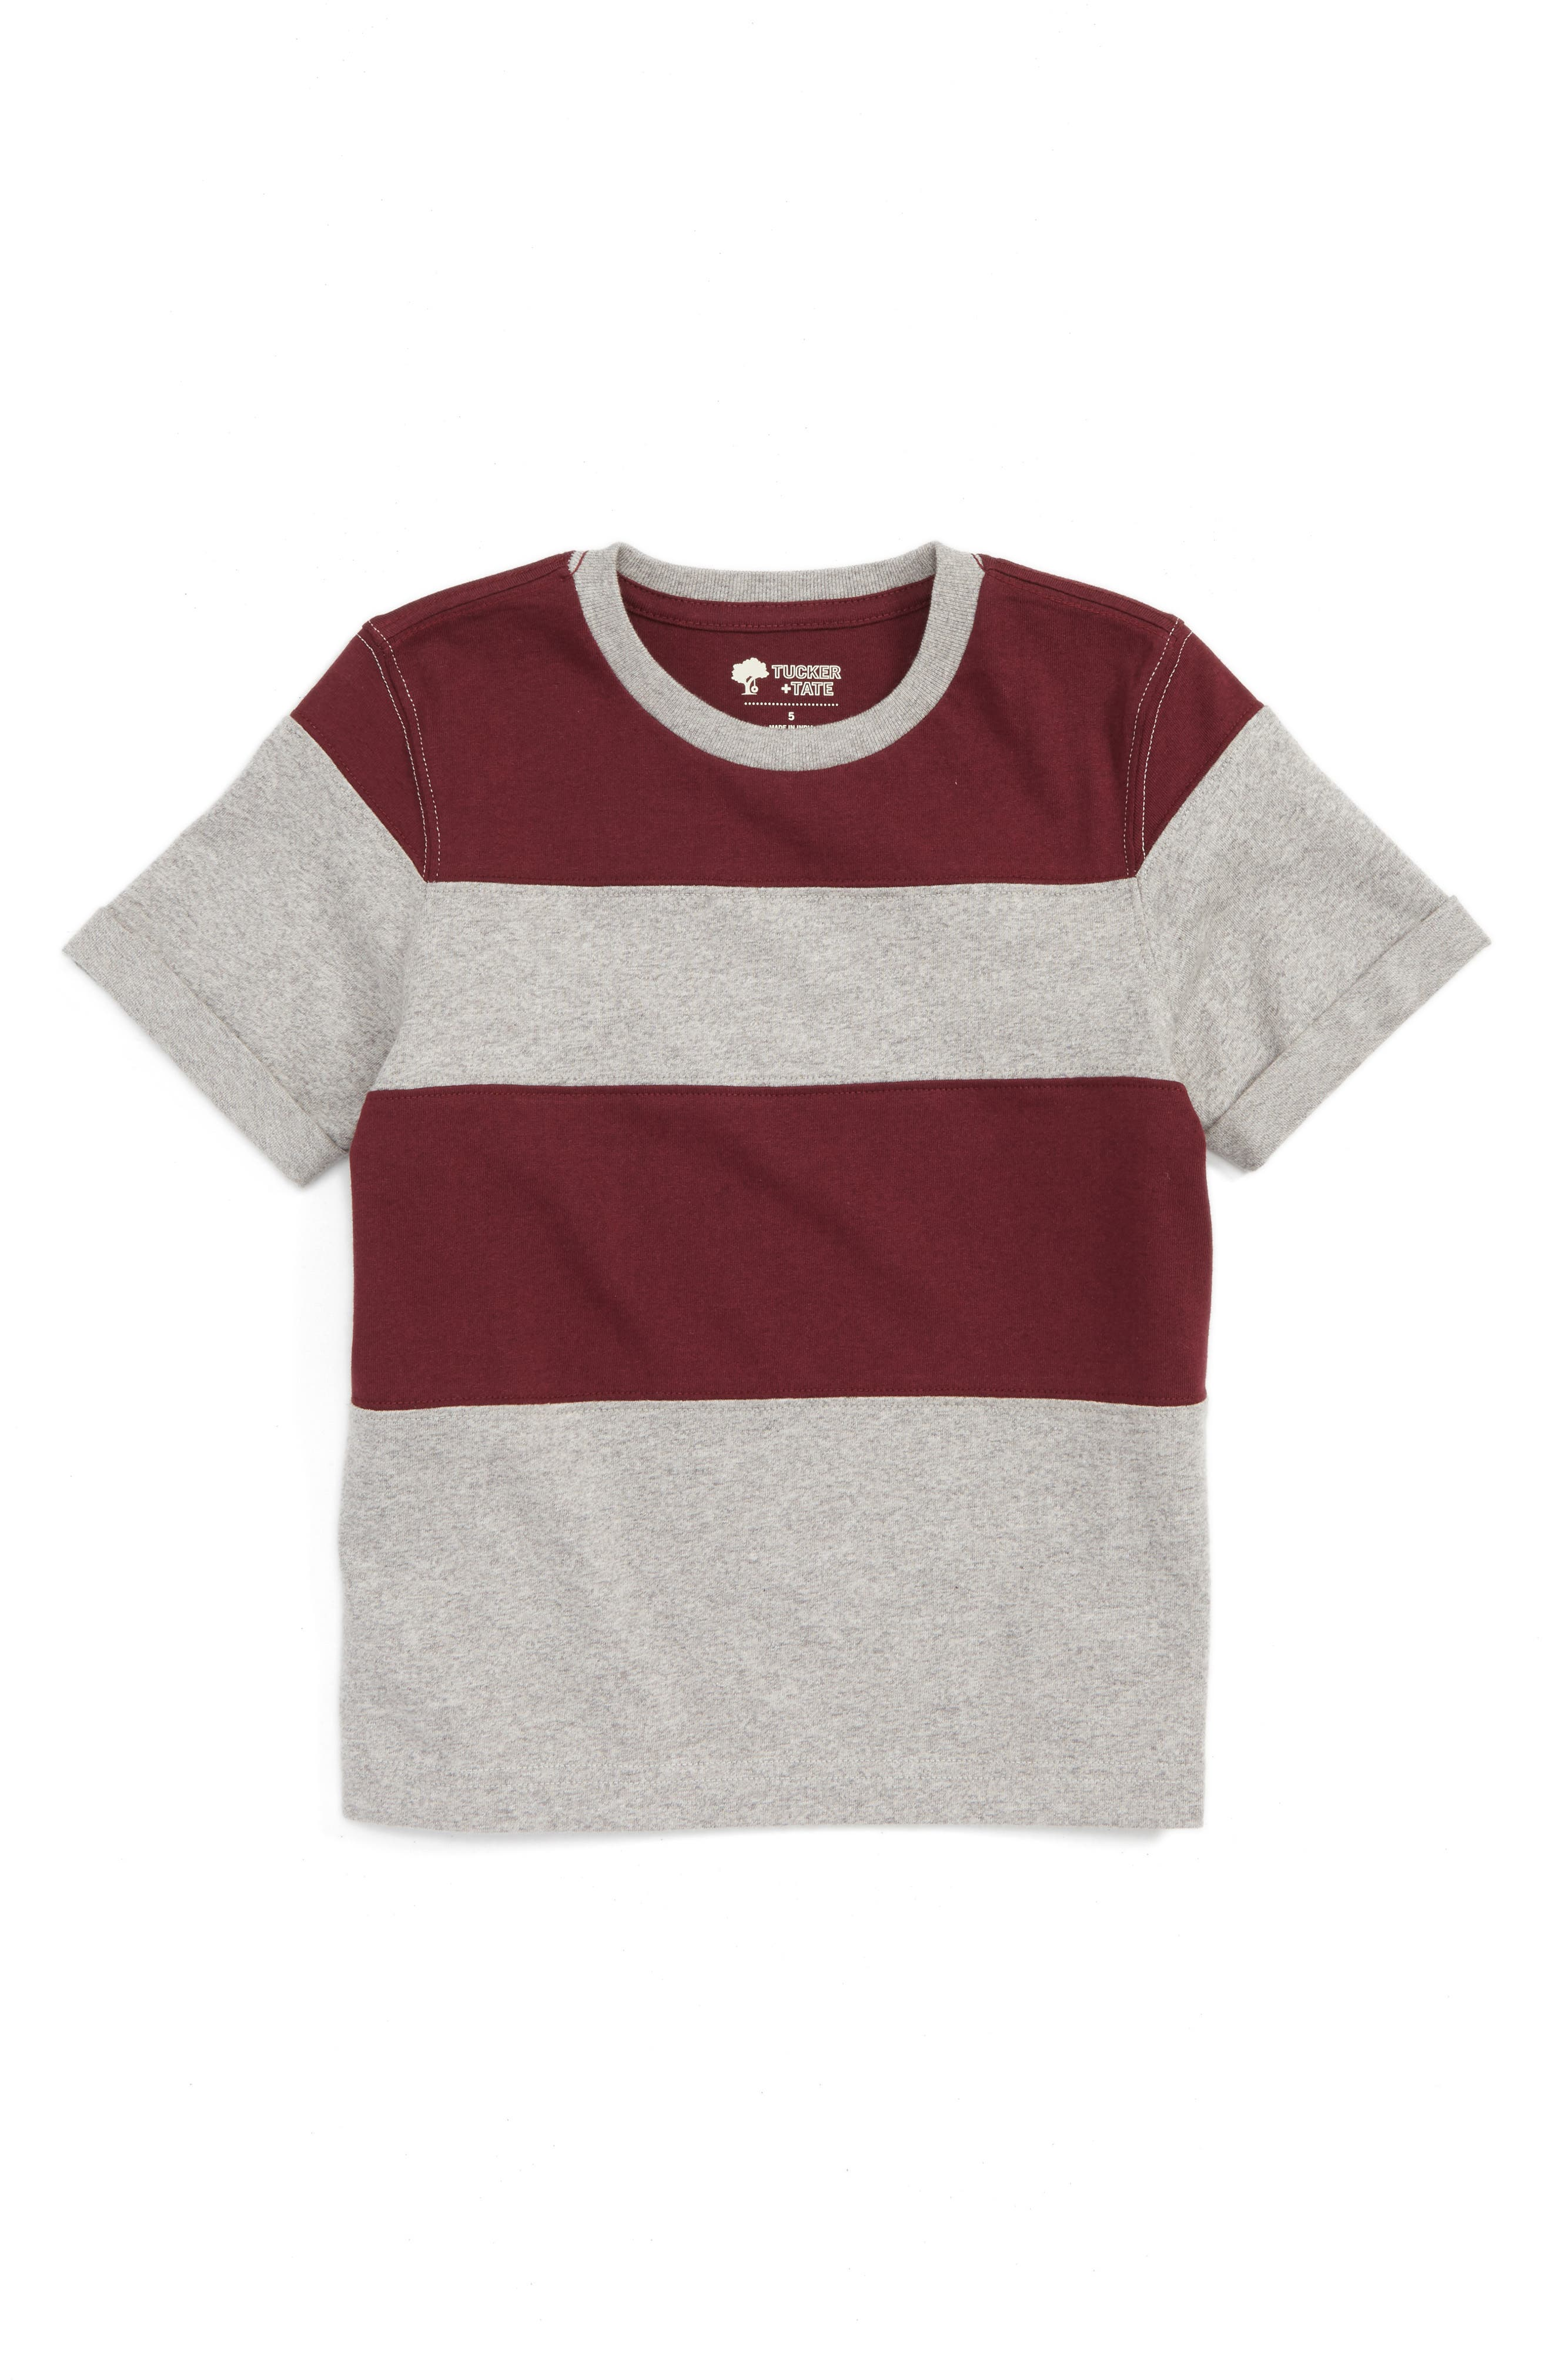 Tucker + Tate Pieced Colorblock T-Shirt (Toddler Boys & Little Boys)